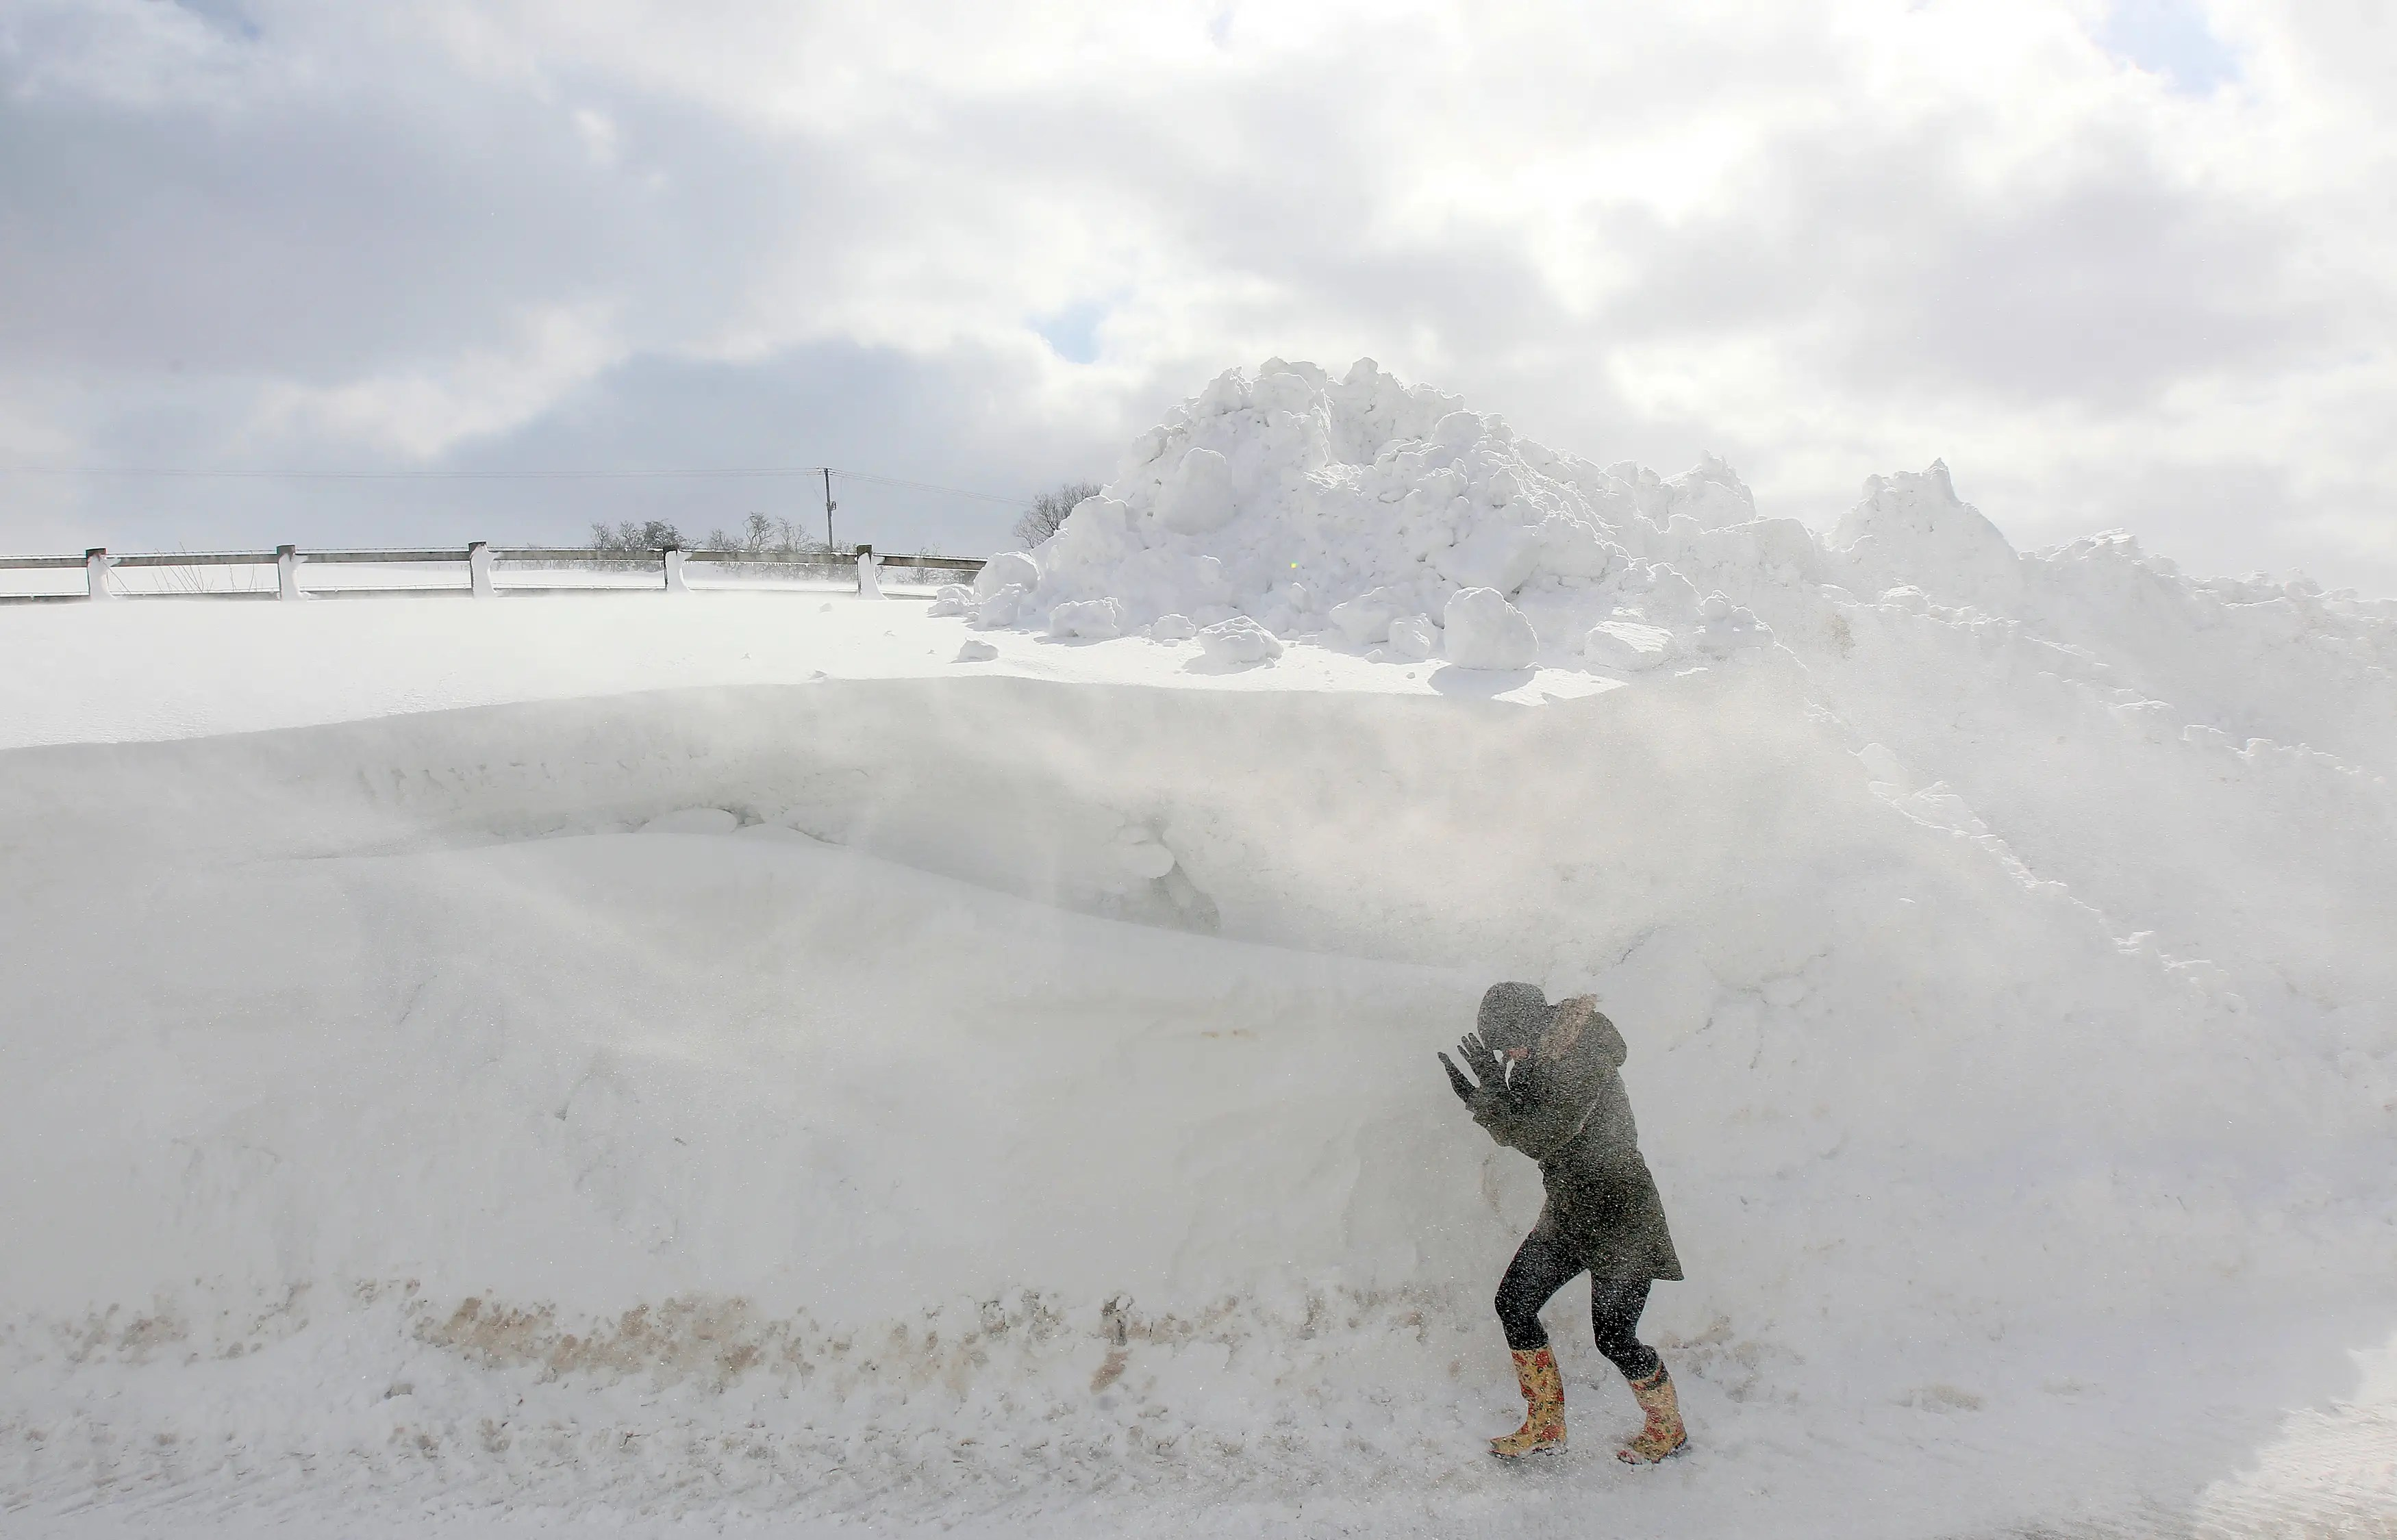 A person walks past a snowdrift in Northern Ireland.